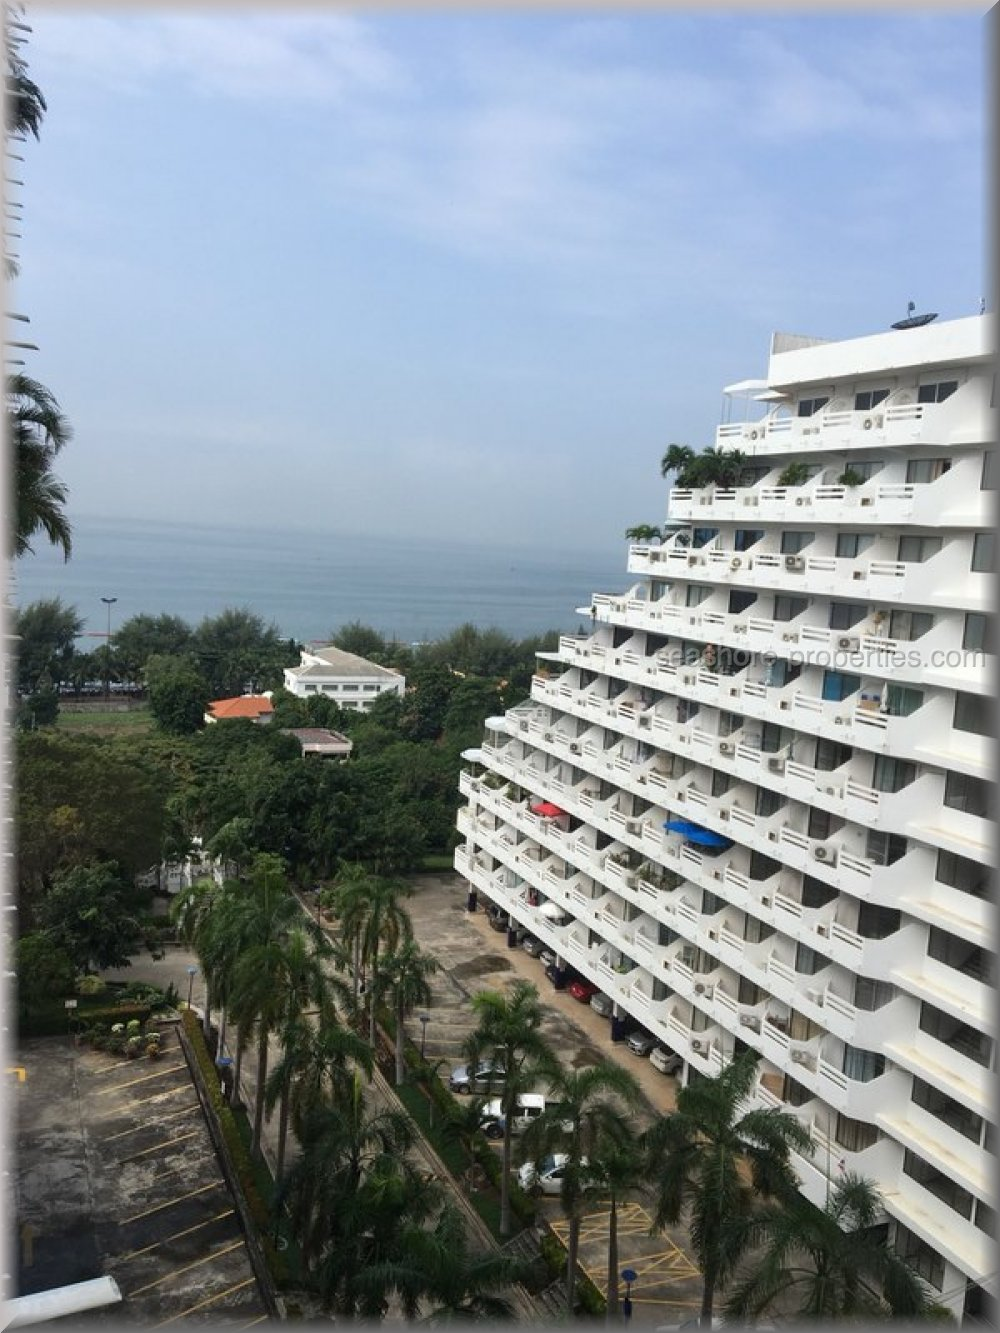 pic-8-Seashore Properties (Thailand) Co. Ltd. Jomtien Condotel  to rent in Jomtien Pattaya